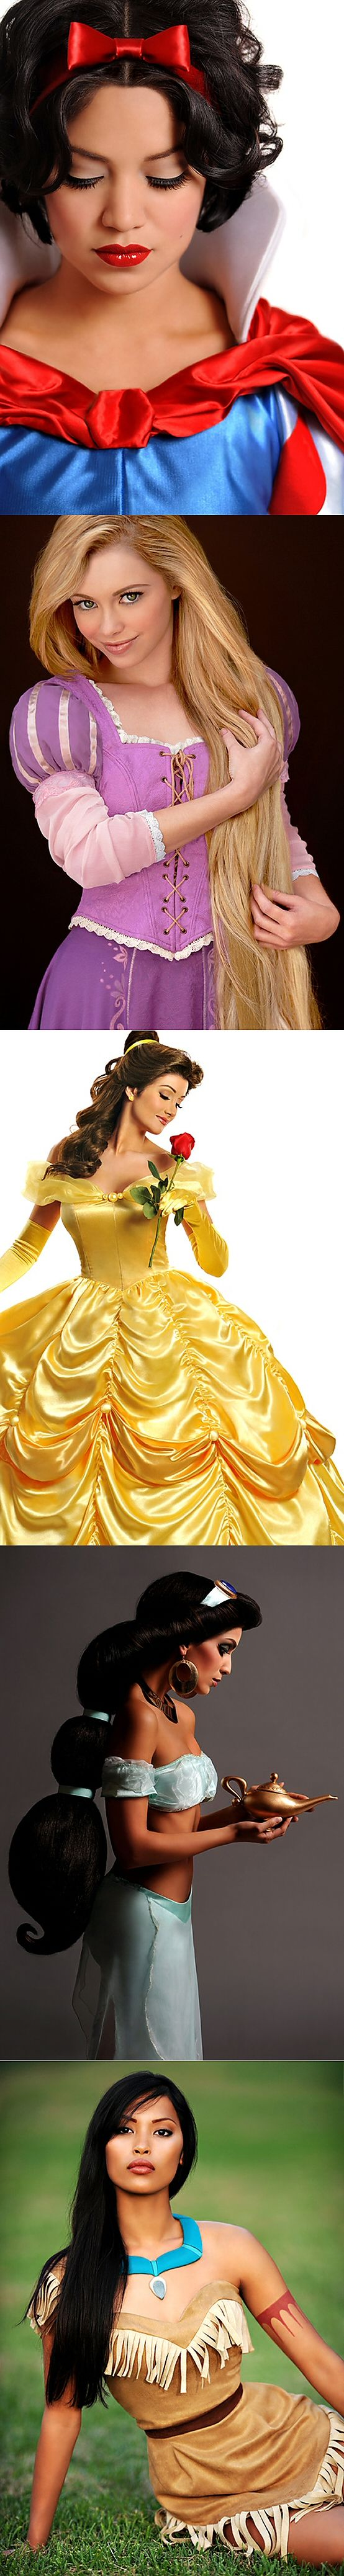 The Real Disney Princesses = Awesome Cosplay CAN I BE A DISNEY PRINCESS ALREADY??????? PLEASE??????